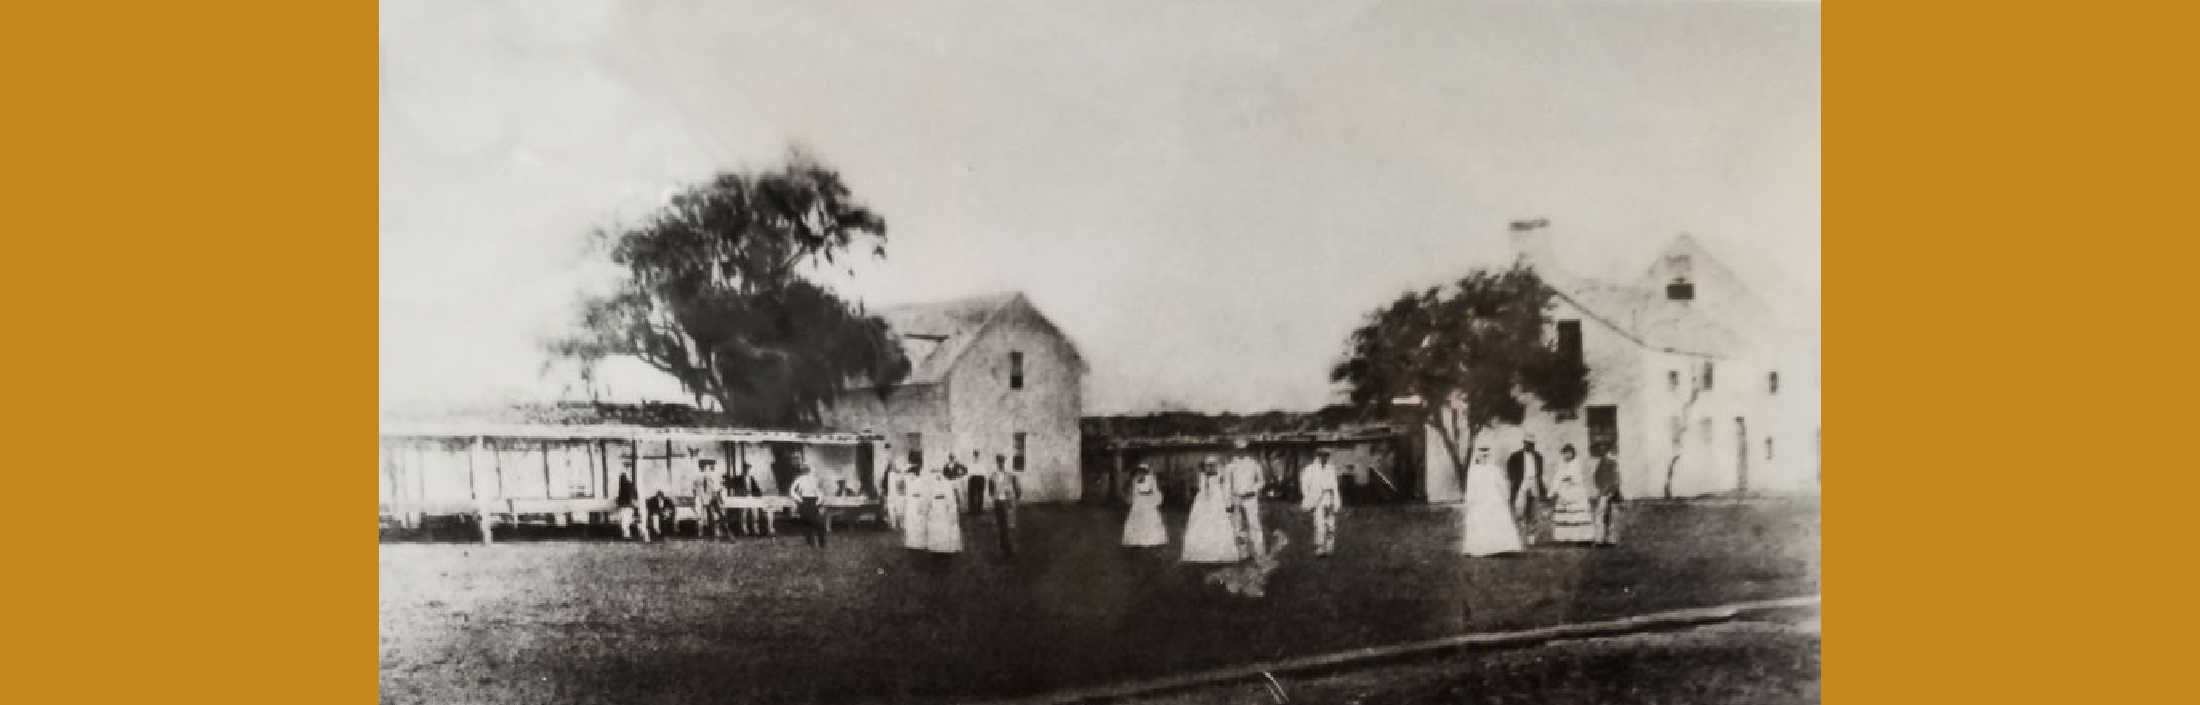 The Best Delmarva Trip You'll Never Get to Take: Cobb's Island Hotel in the 1860s